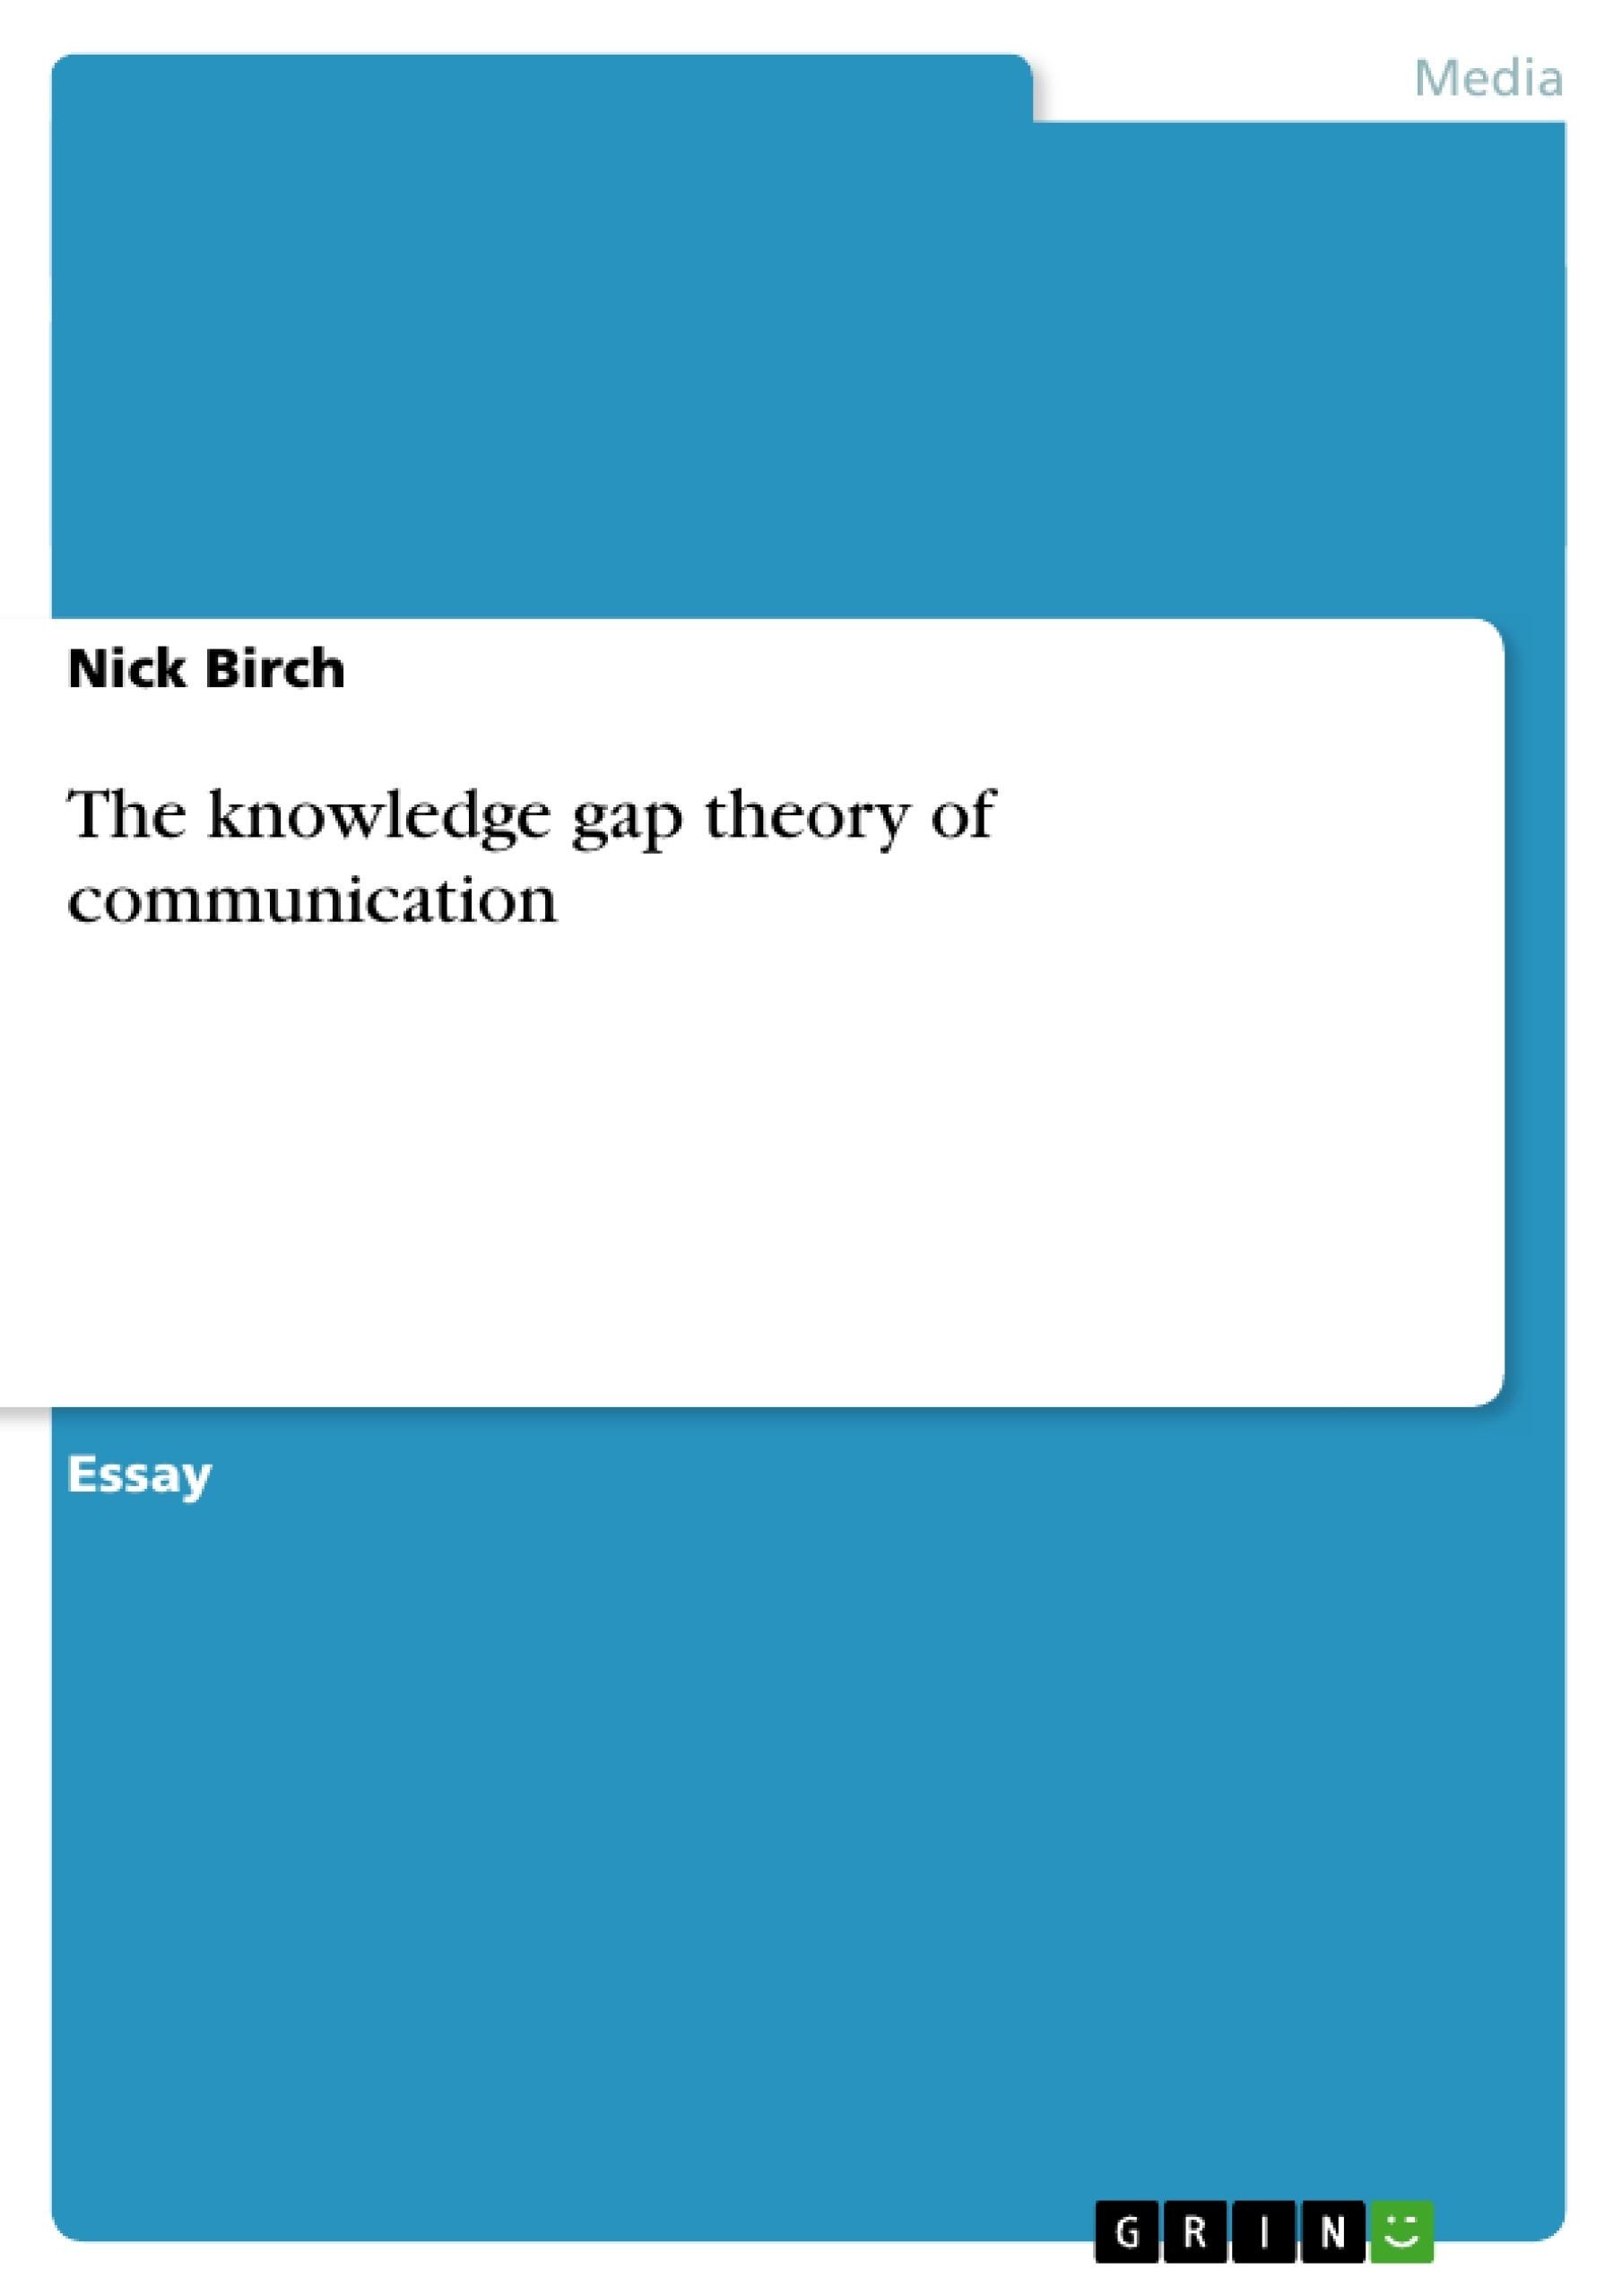 Title: The knowledge gap theory of communication